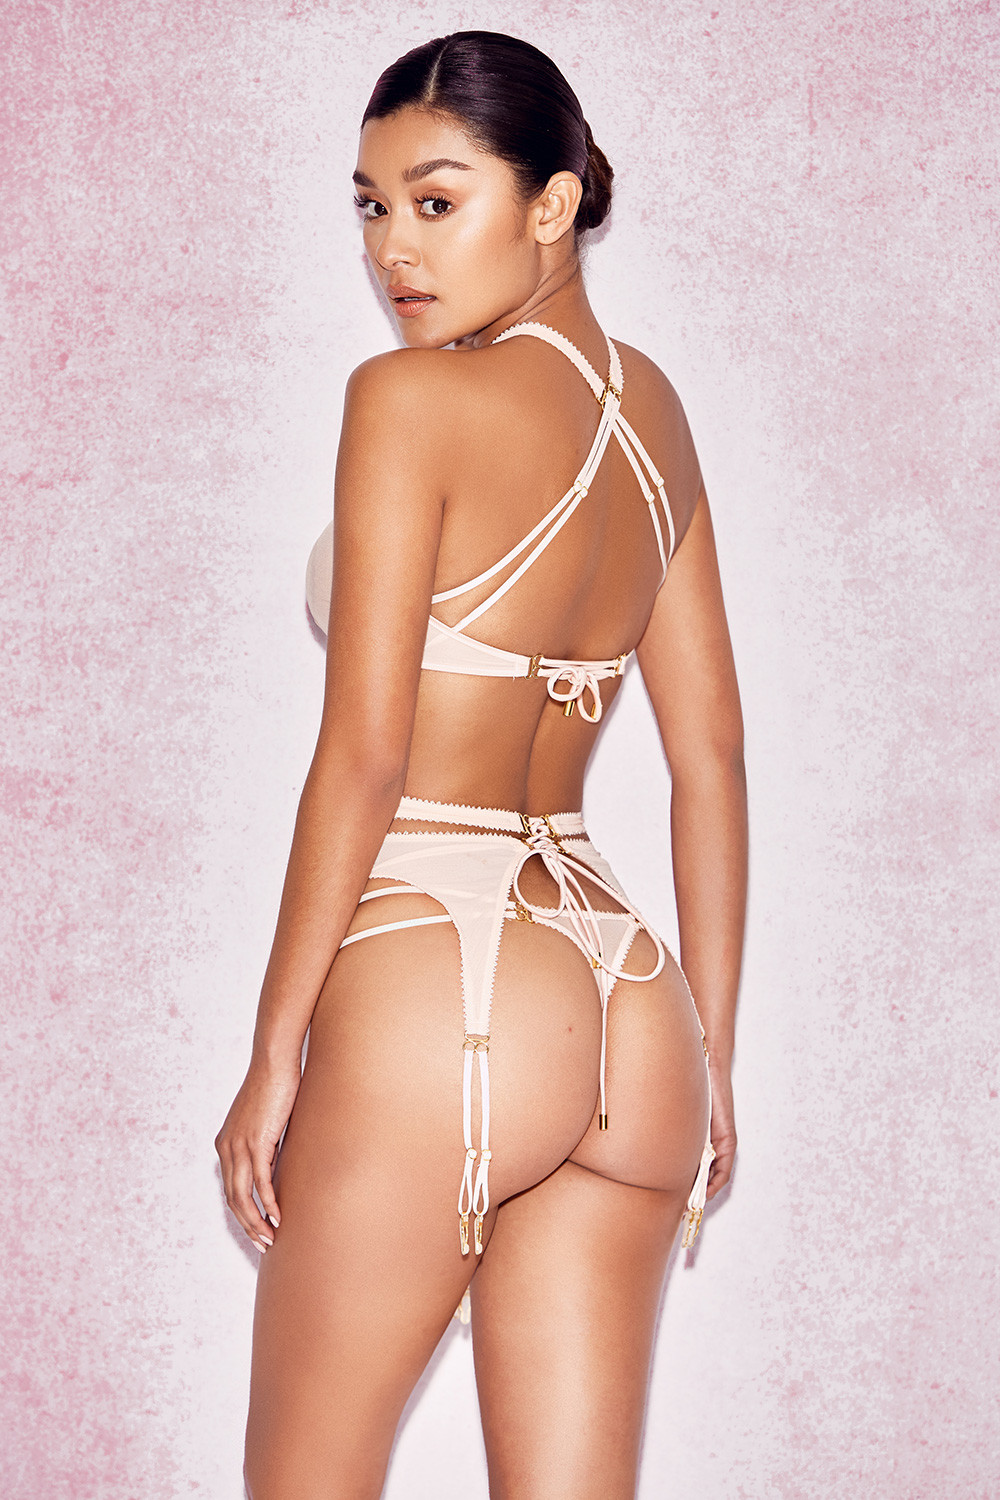 I found a matching bra and panty set for you 5